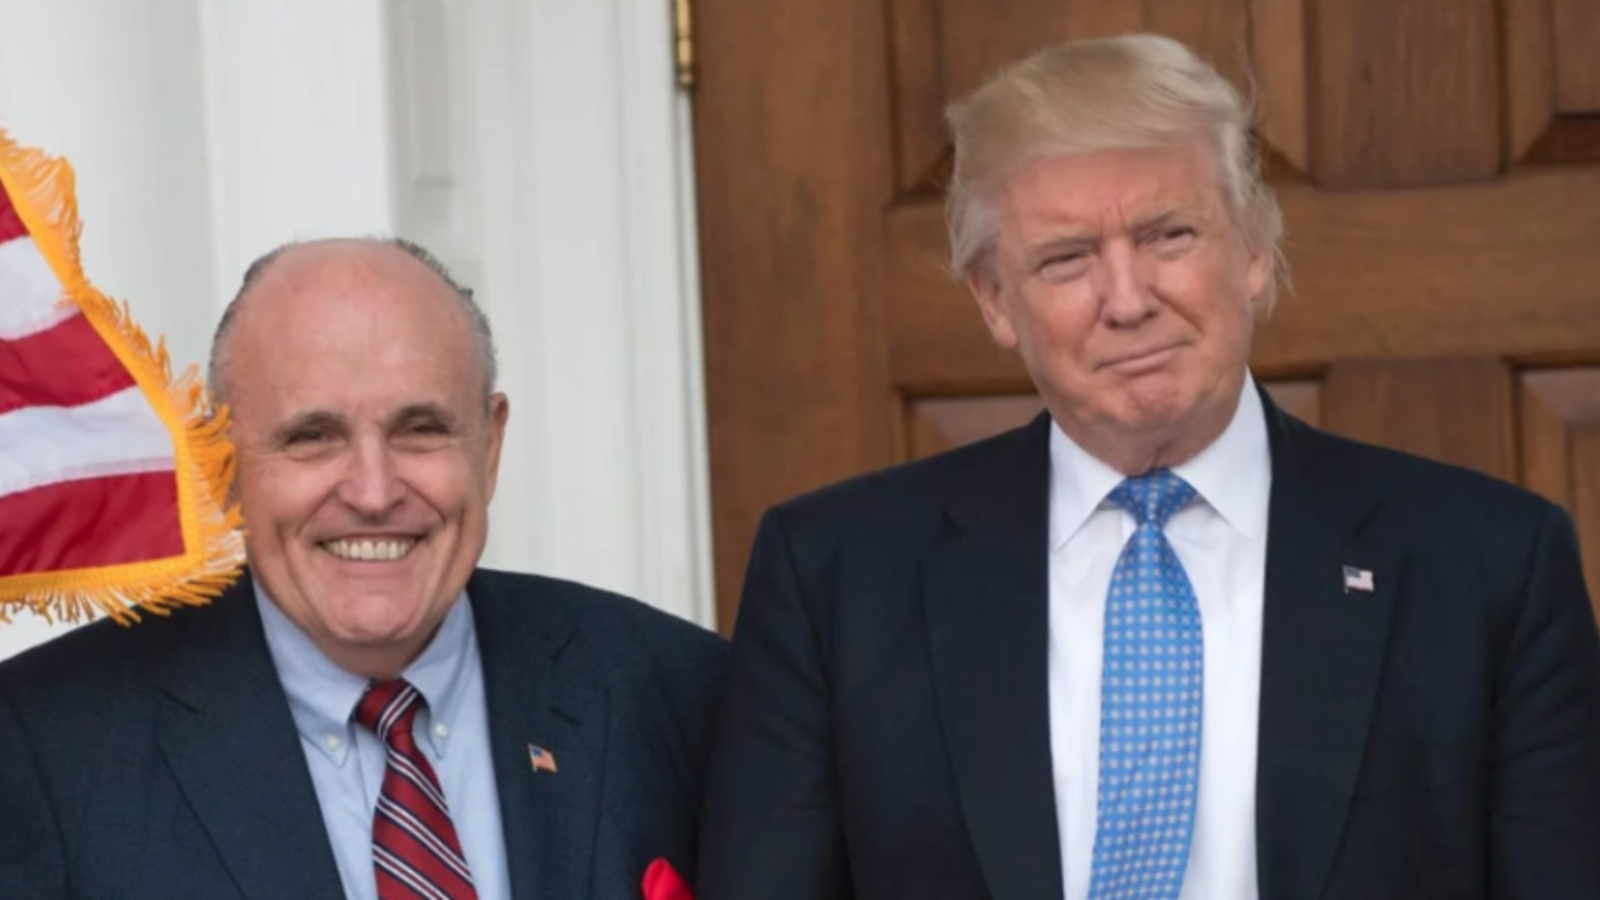 U.S. President lawyer Rudy Giuliani (L) and President Donald Trump. (Don Emmert /AFP)